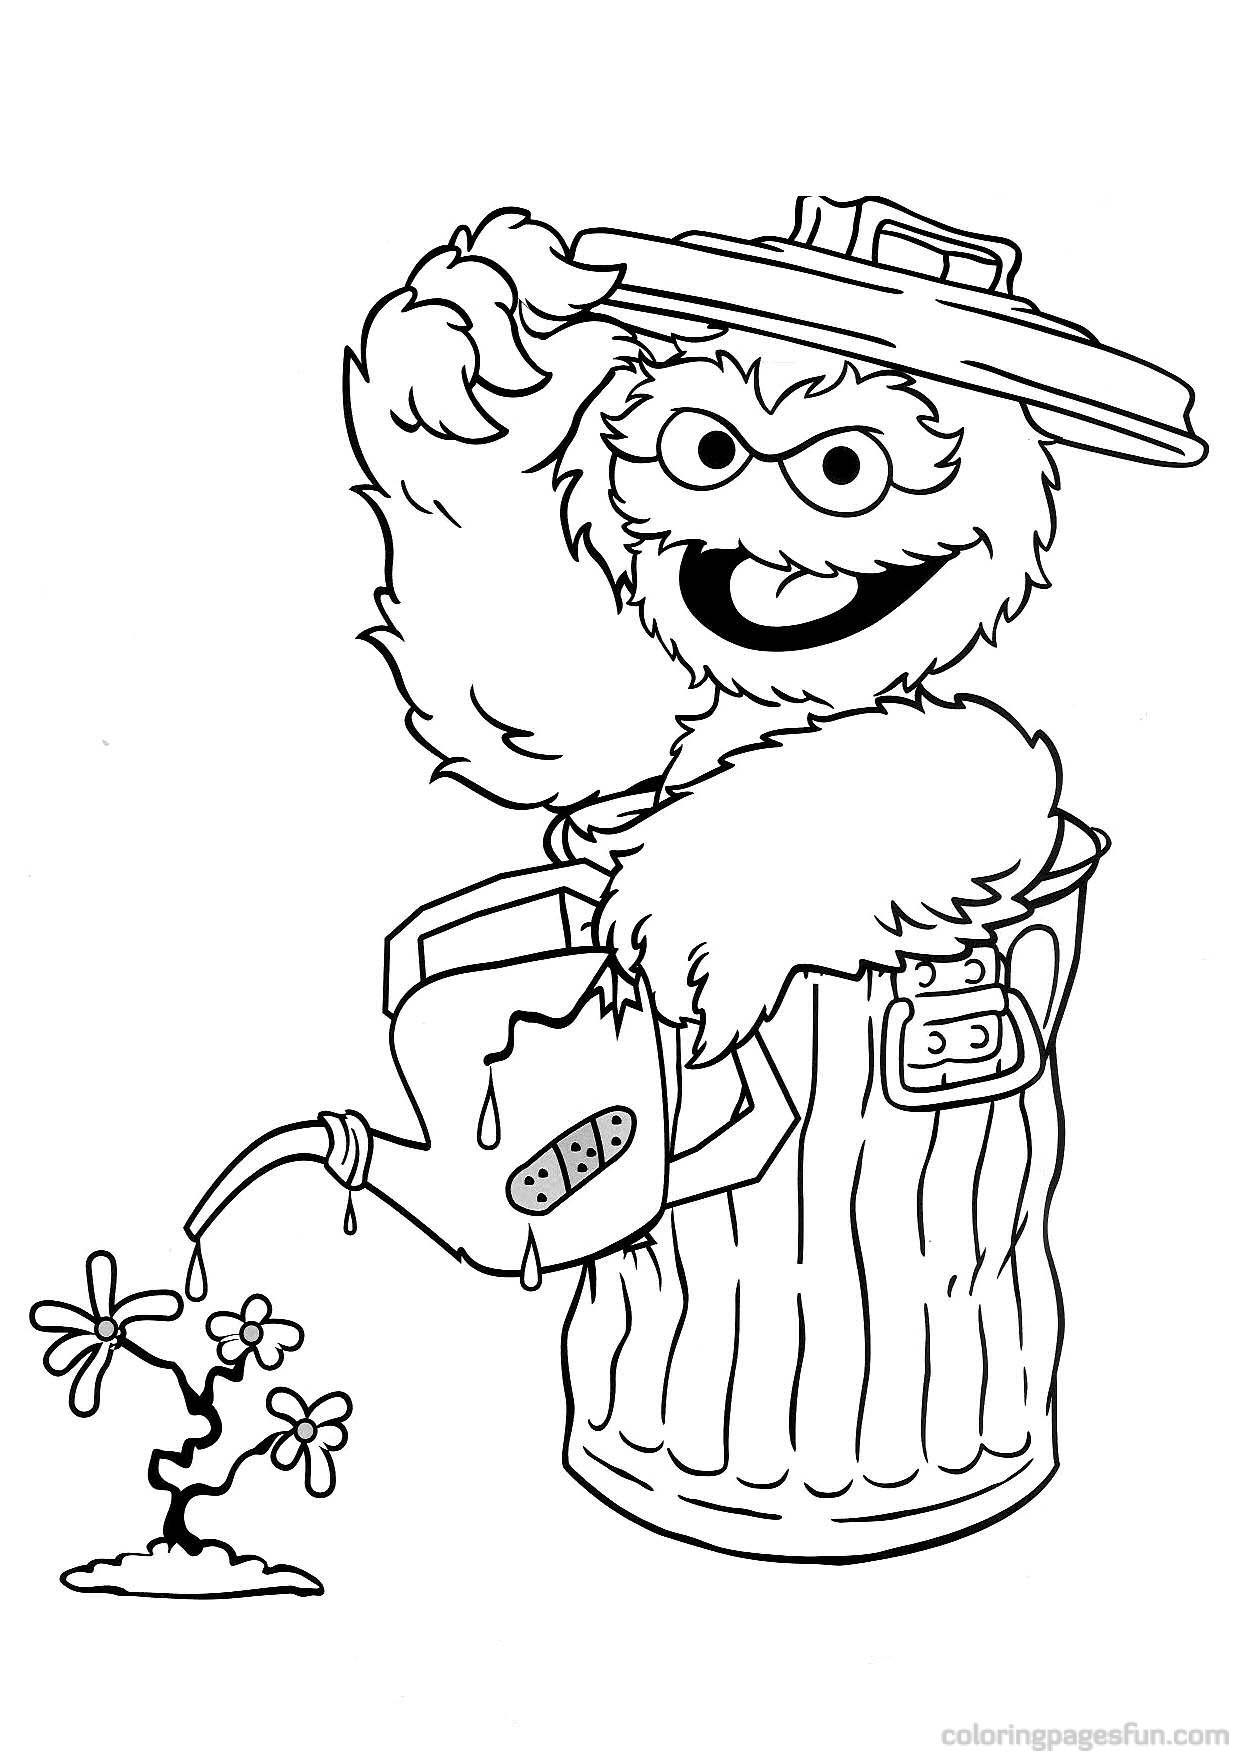 Coloring Pages Sesame Street Color Pages sesame street coloring pages to print futpal com printable me